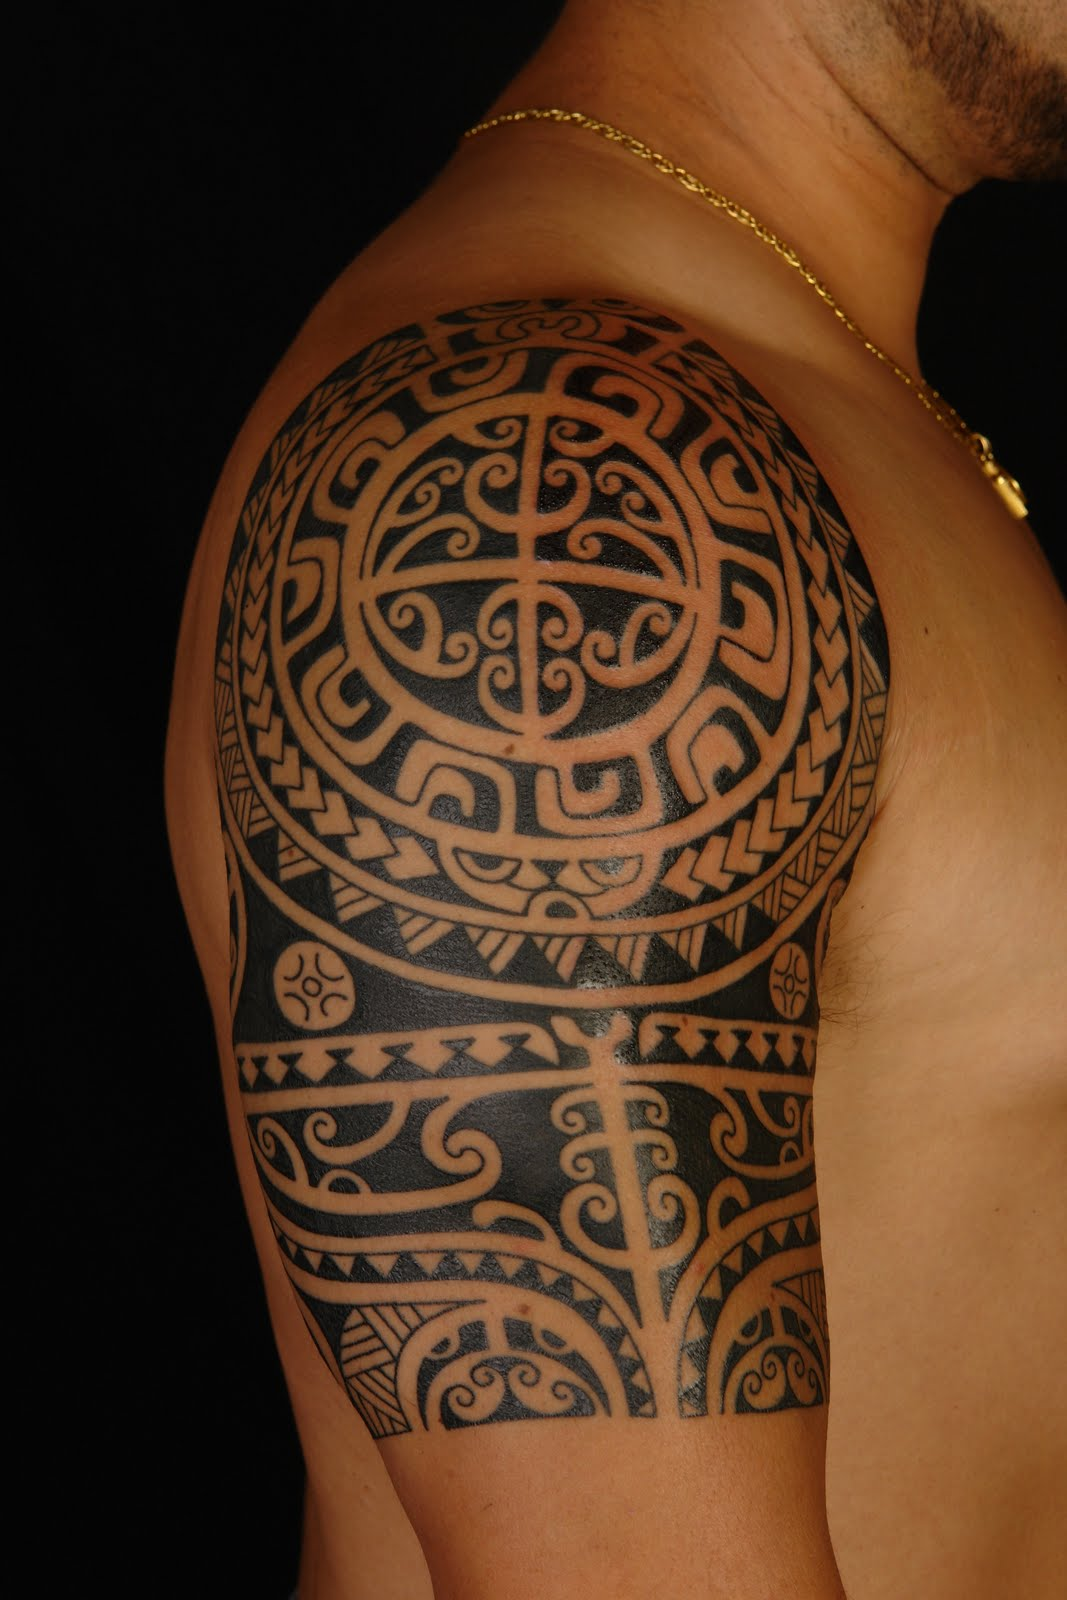 shane tattoos polynesian shoulder tattoo on anthony. Black Bedroom Furniture Sets. Home Design Ideas